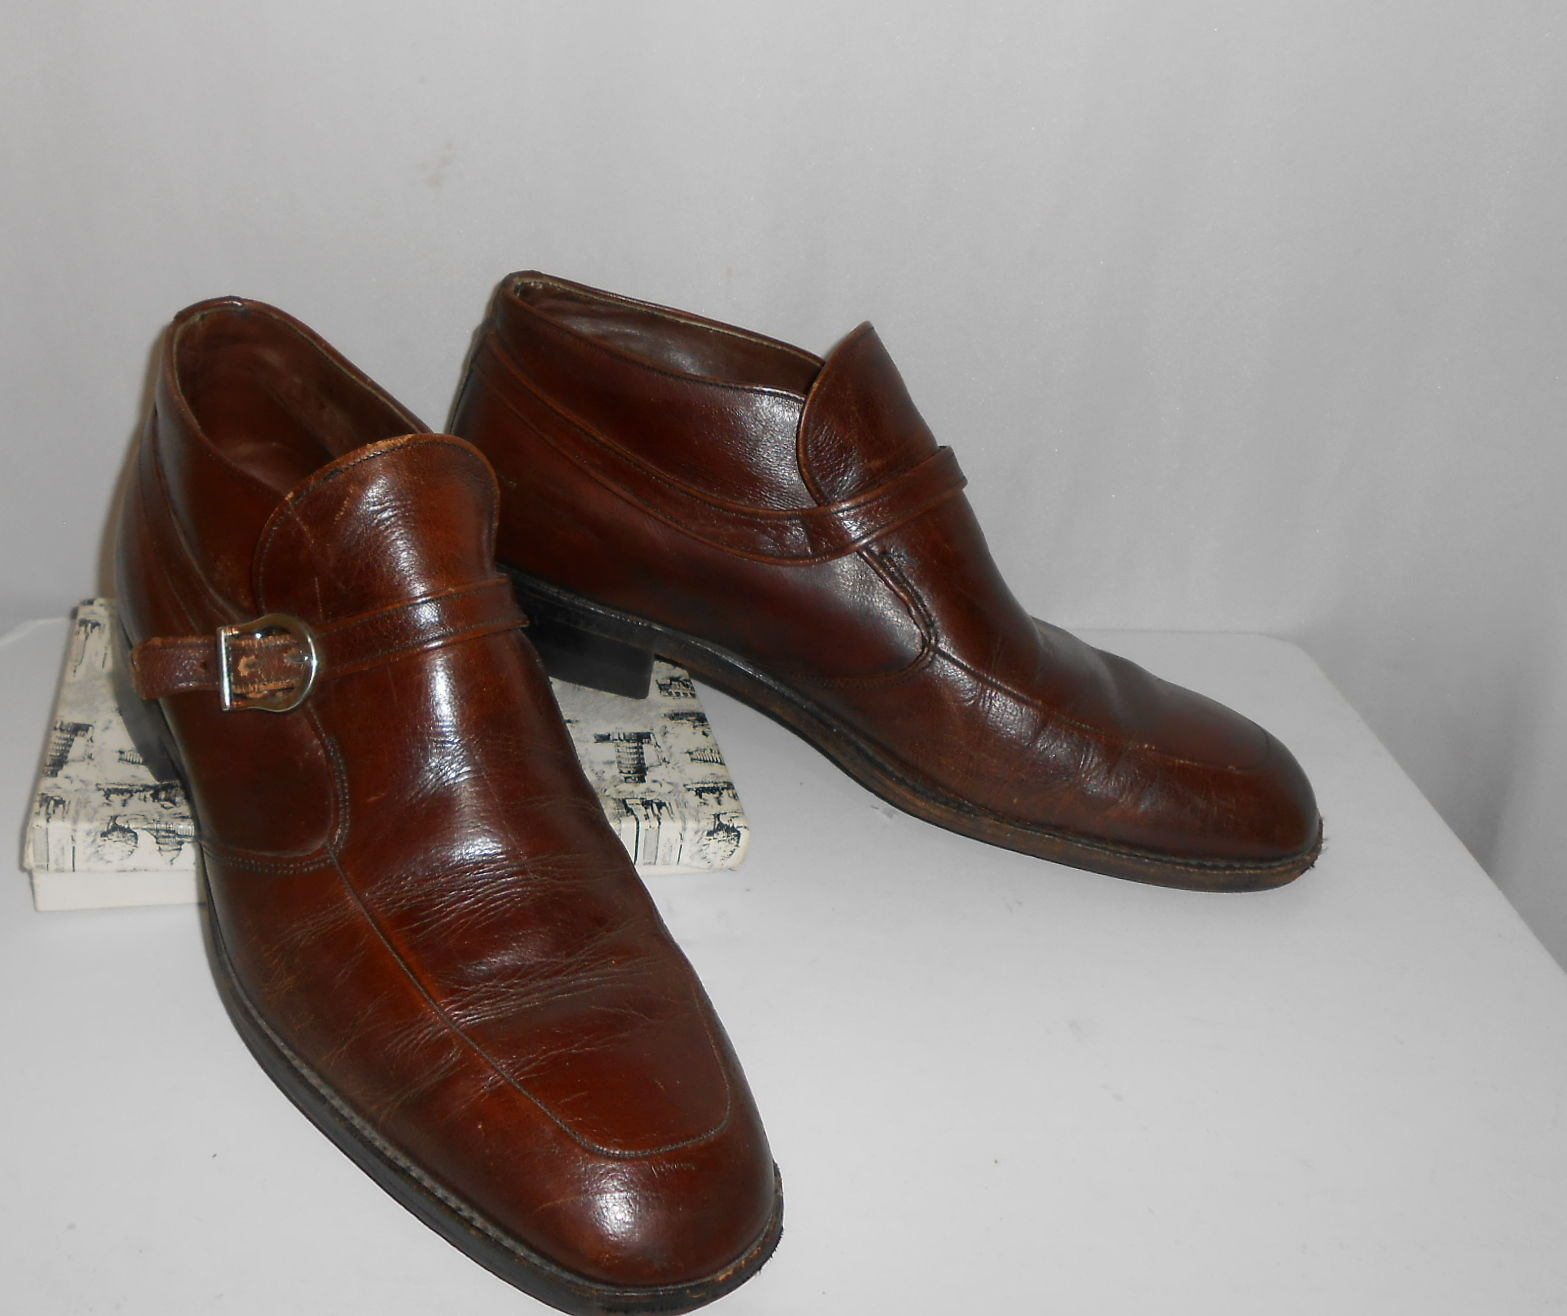 ac971e86d922 57. 57. Previous. Vintage Brown Leather Monk Strap Buckle Sears Easy Flex  Men Shoes Sz 10 D · Vintage Brown ...